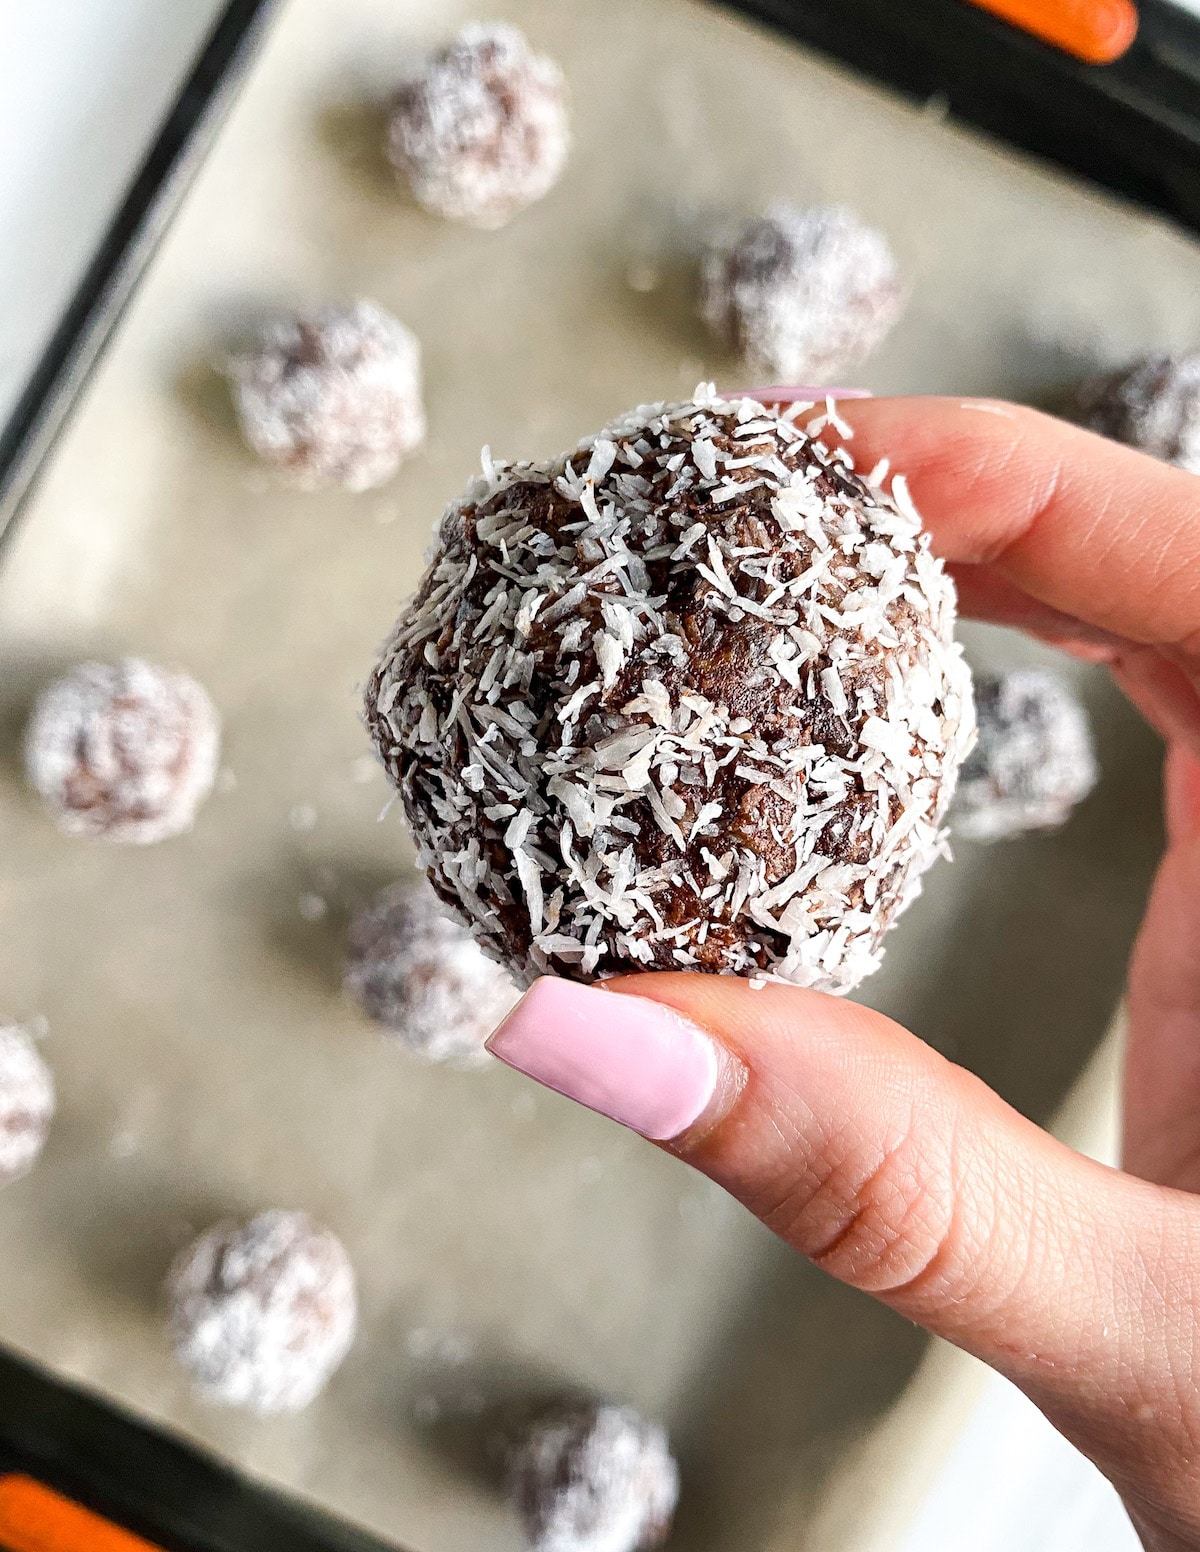 Holding a energy ball in front of a tray of energy balls